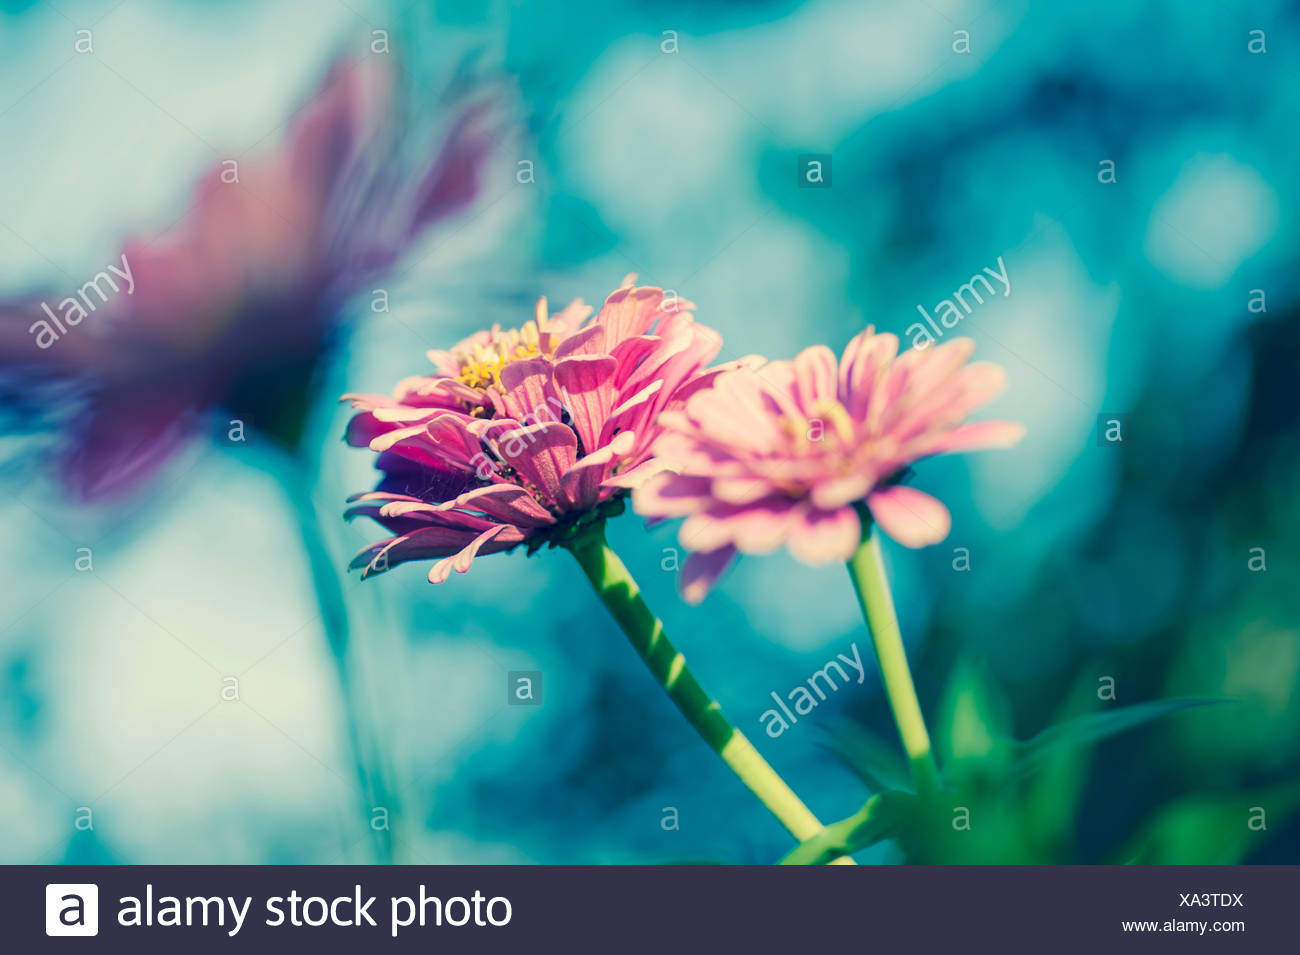 Three blossoms of common zinnia (Asteroideae) - Stock Image